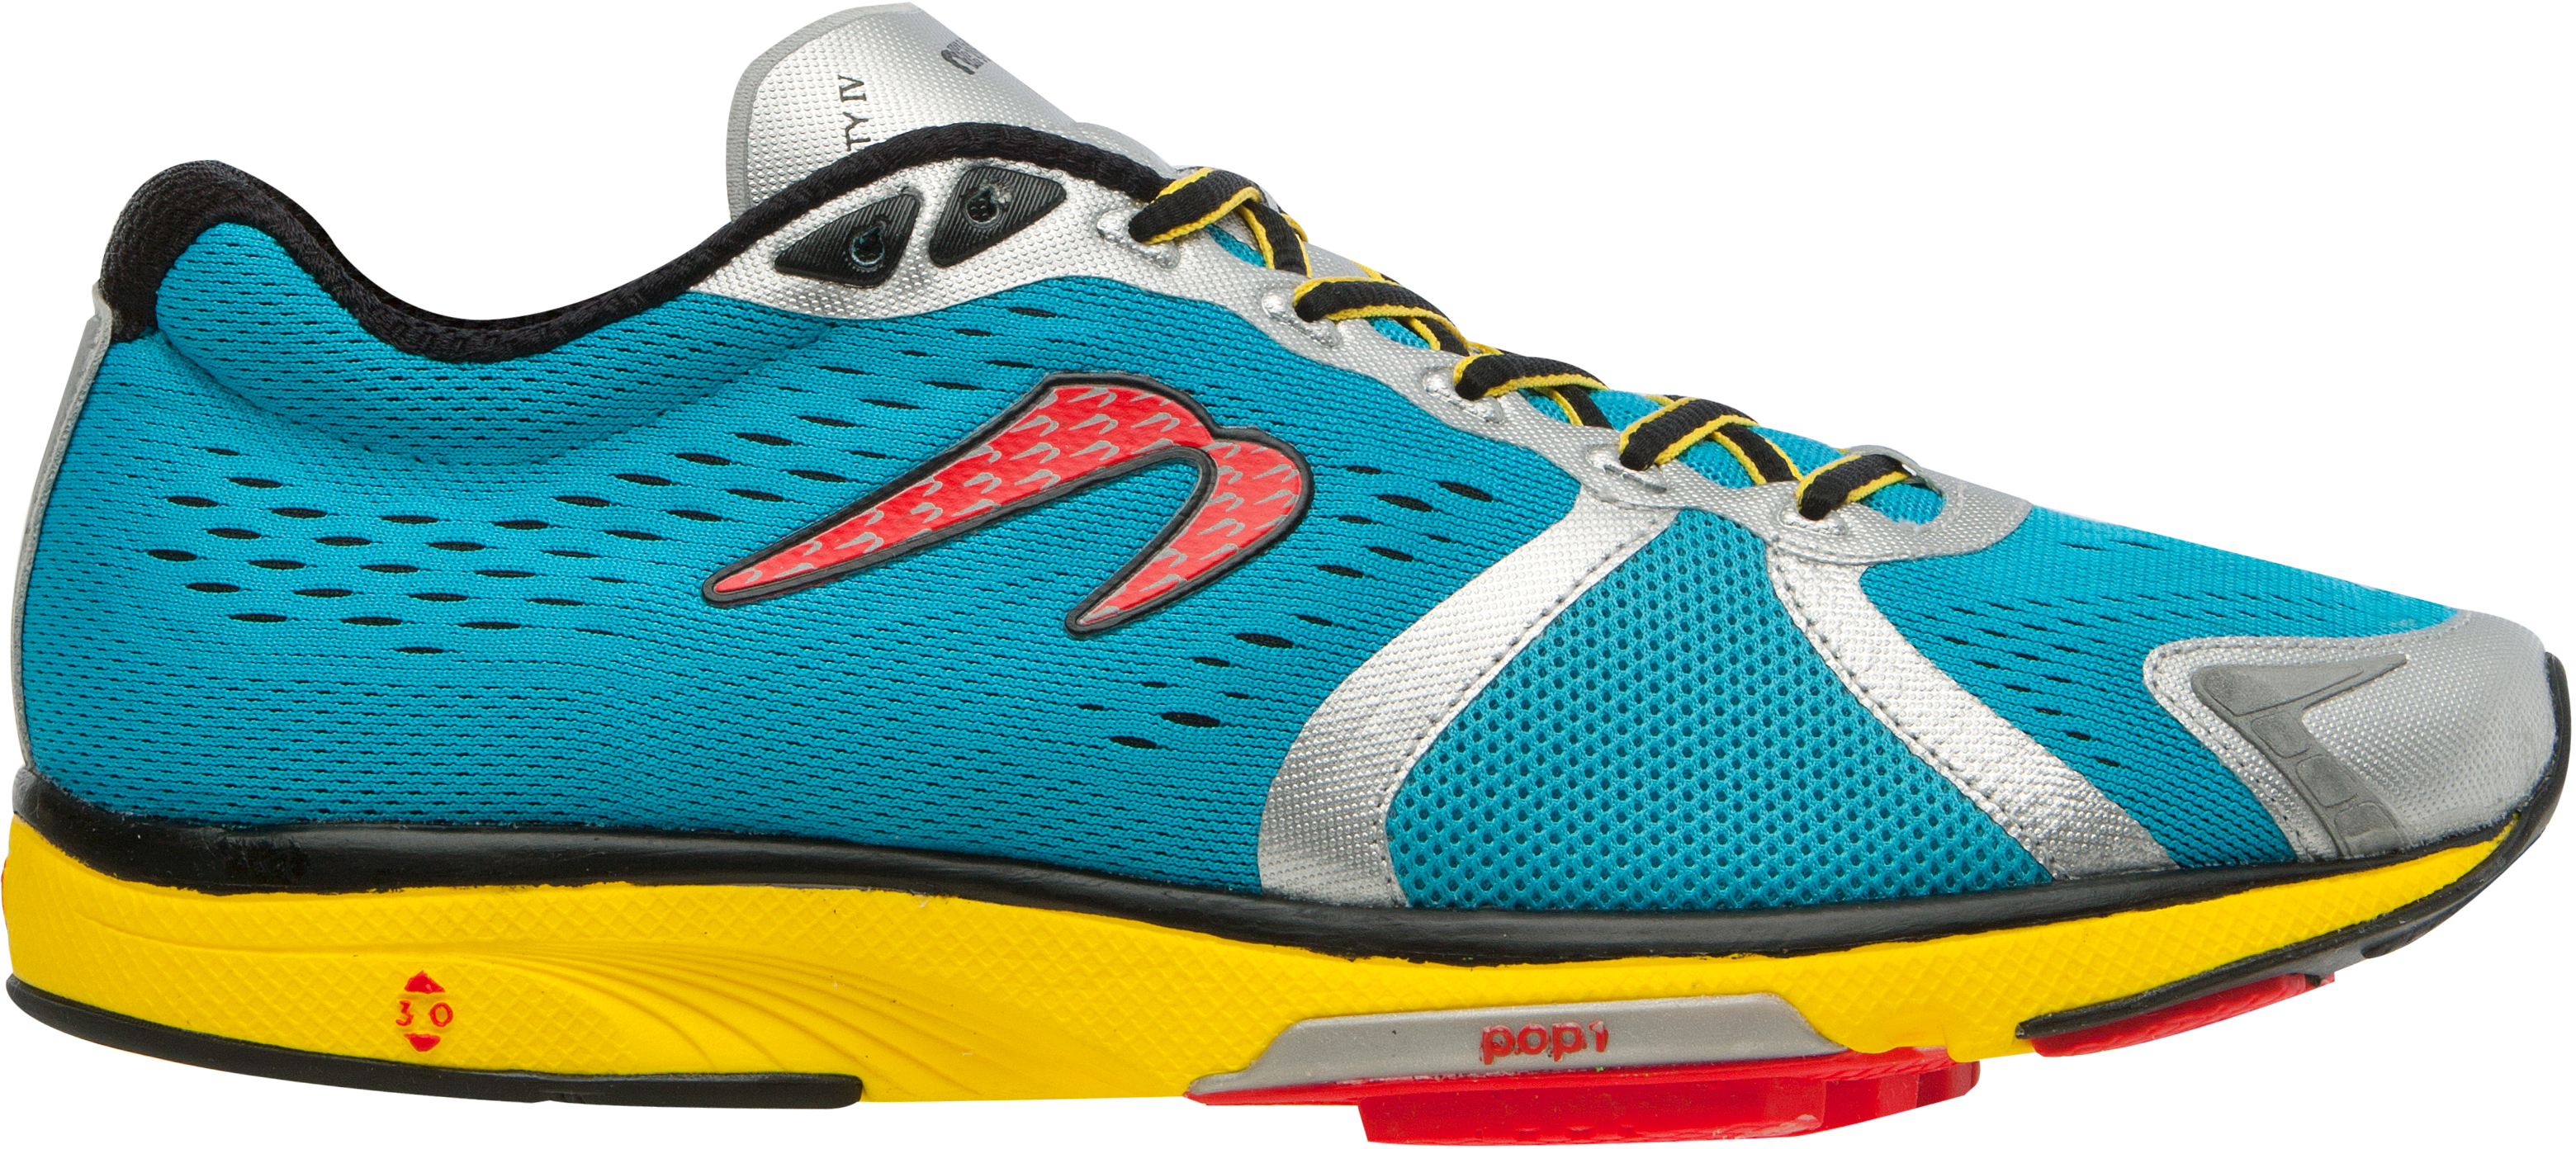 Newton Running is a running shoe company headquartered in Boulder, Colorado. They are specialist in running and running shoes. Their shoes are highly comfortable and light-weighted, making runners and outdoor sportsmen run their own best.